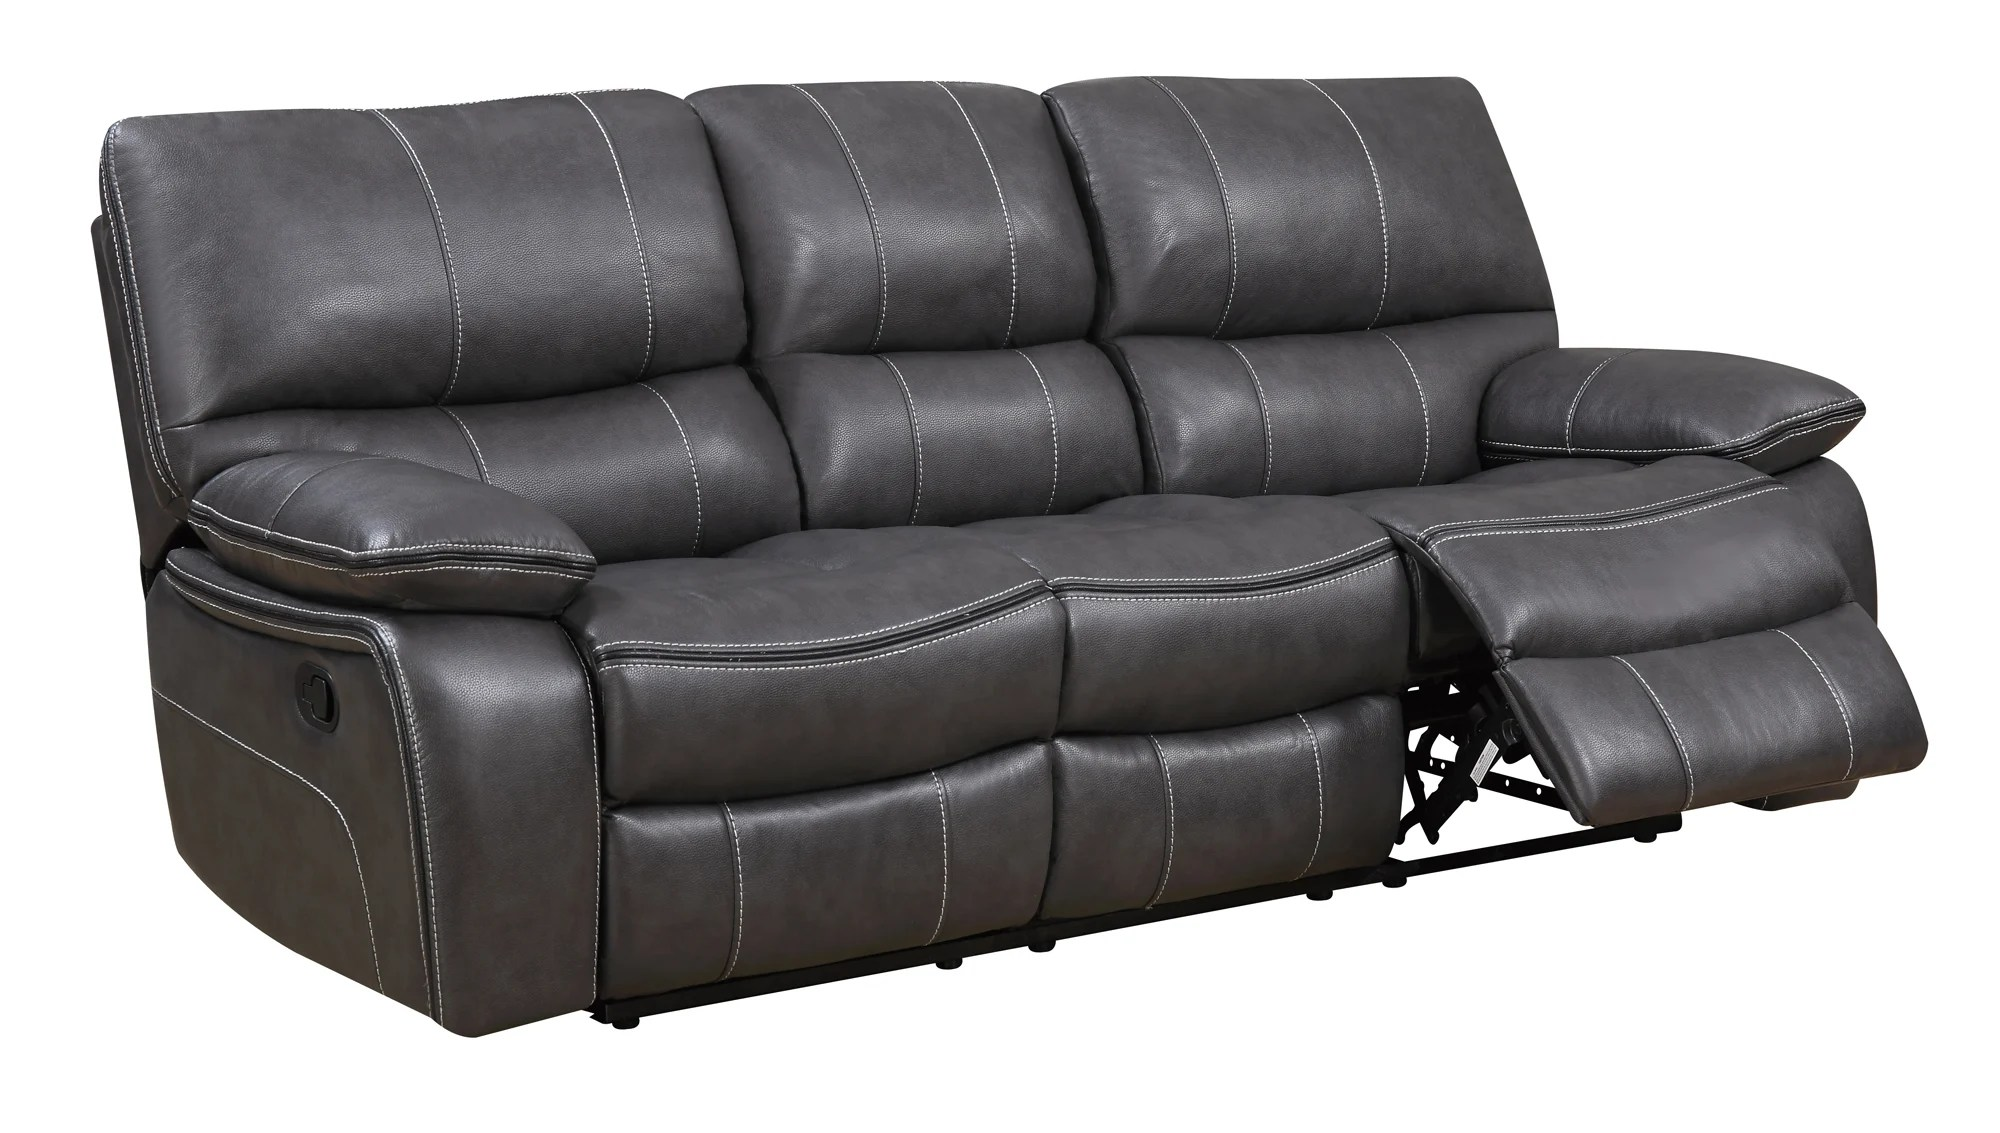 leather sofa furniture stores nyc bed fold down table u0040 grey black air reclining by global